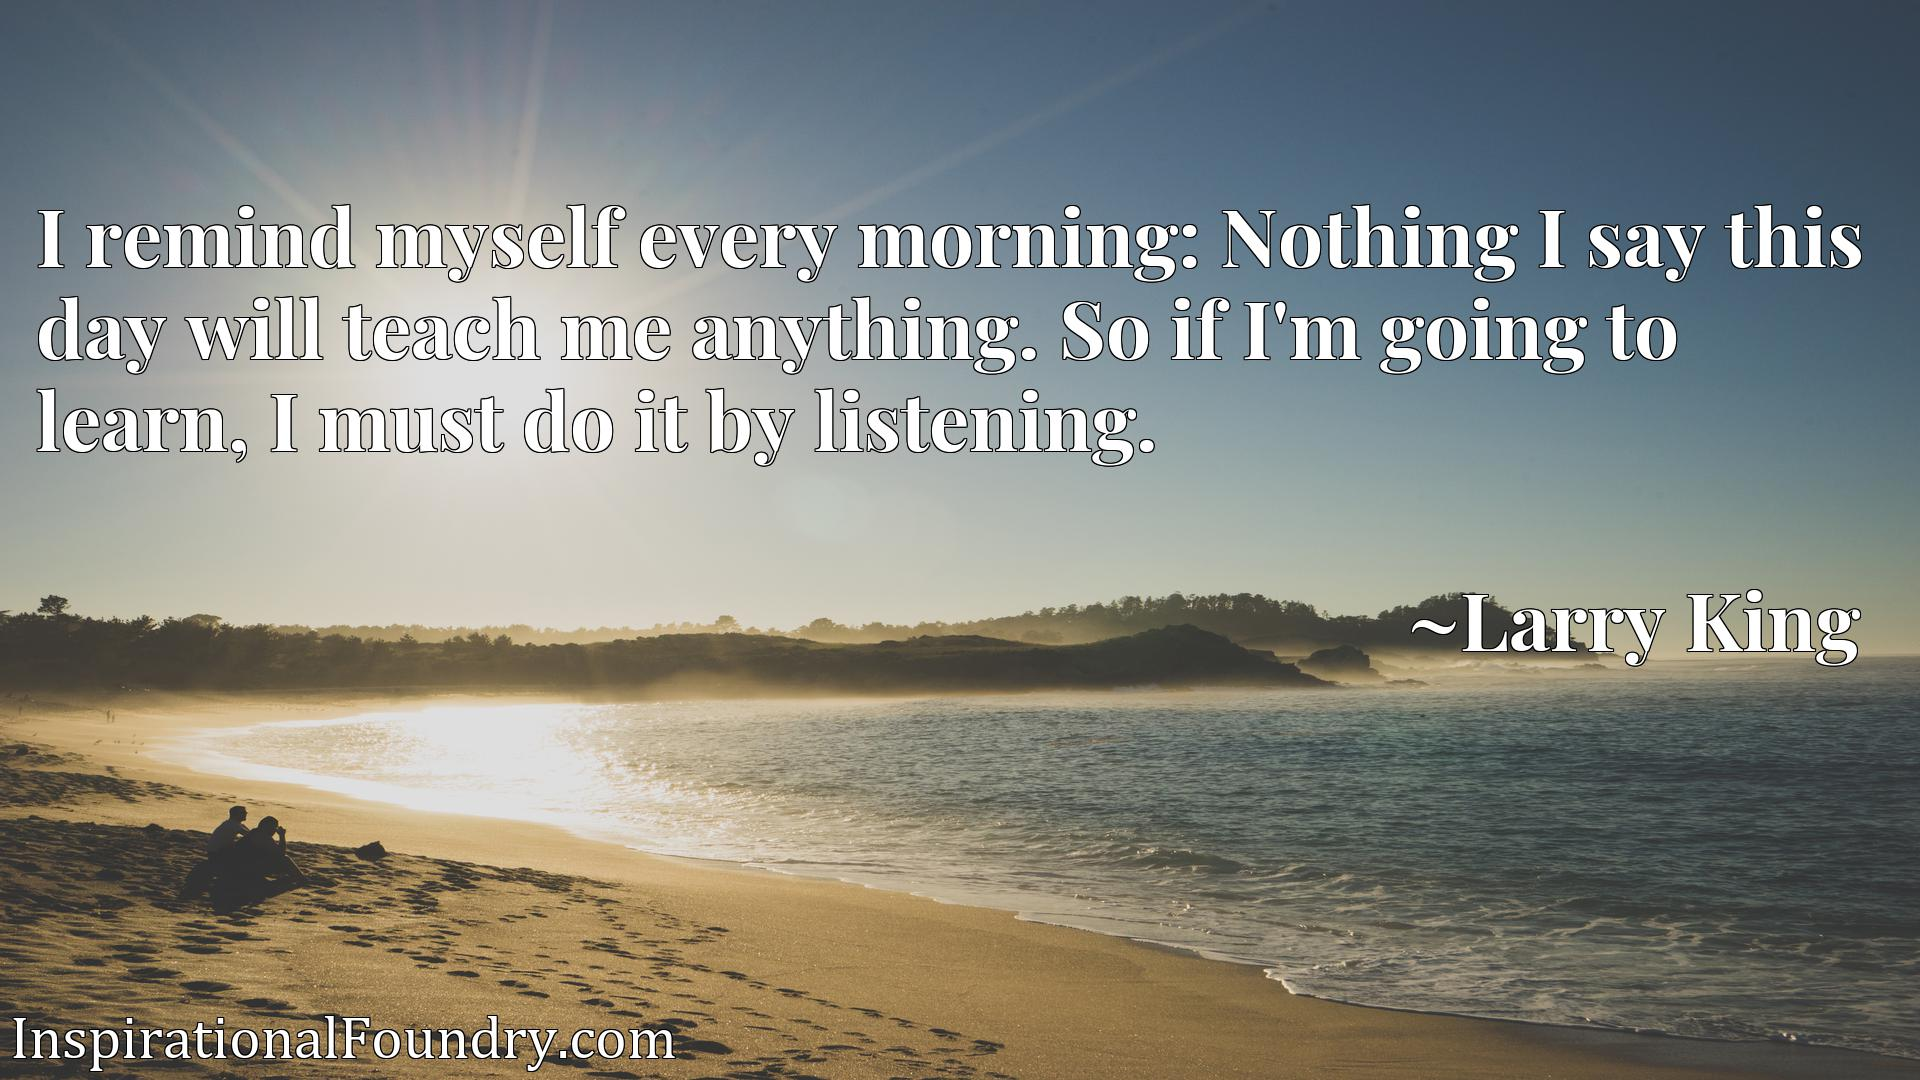 I remind myself every morning: Nothing I say this day will teach me anything. So if I'm going to learn, I must do it by listening.